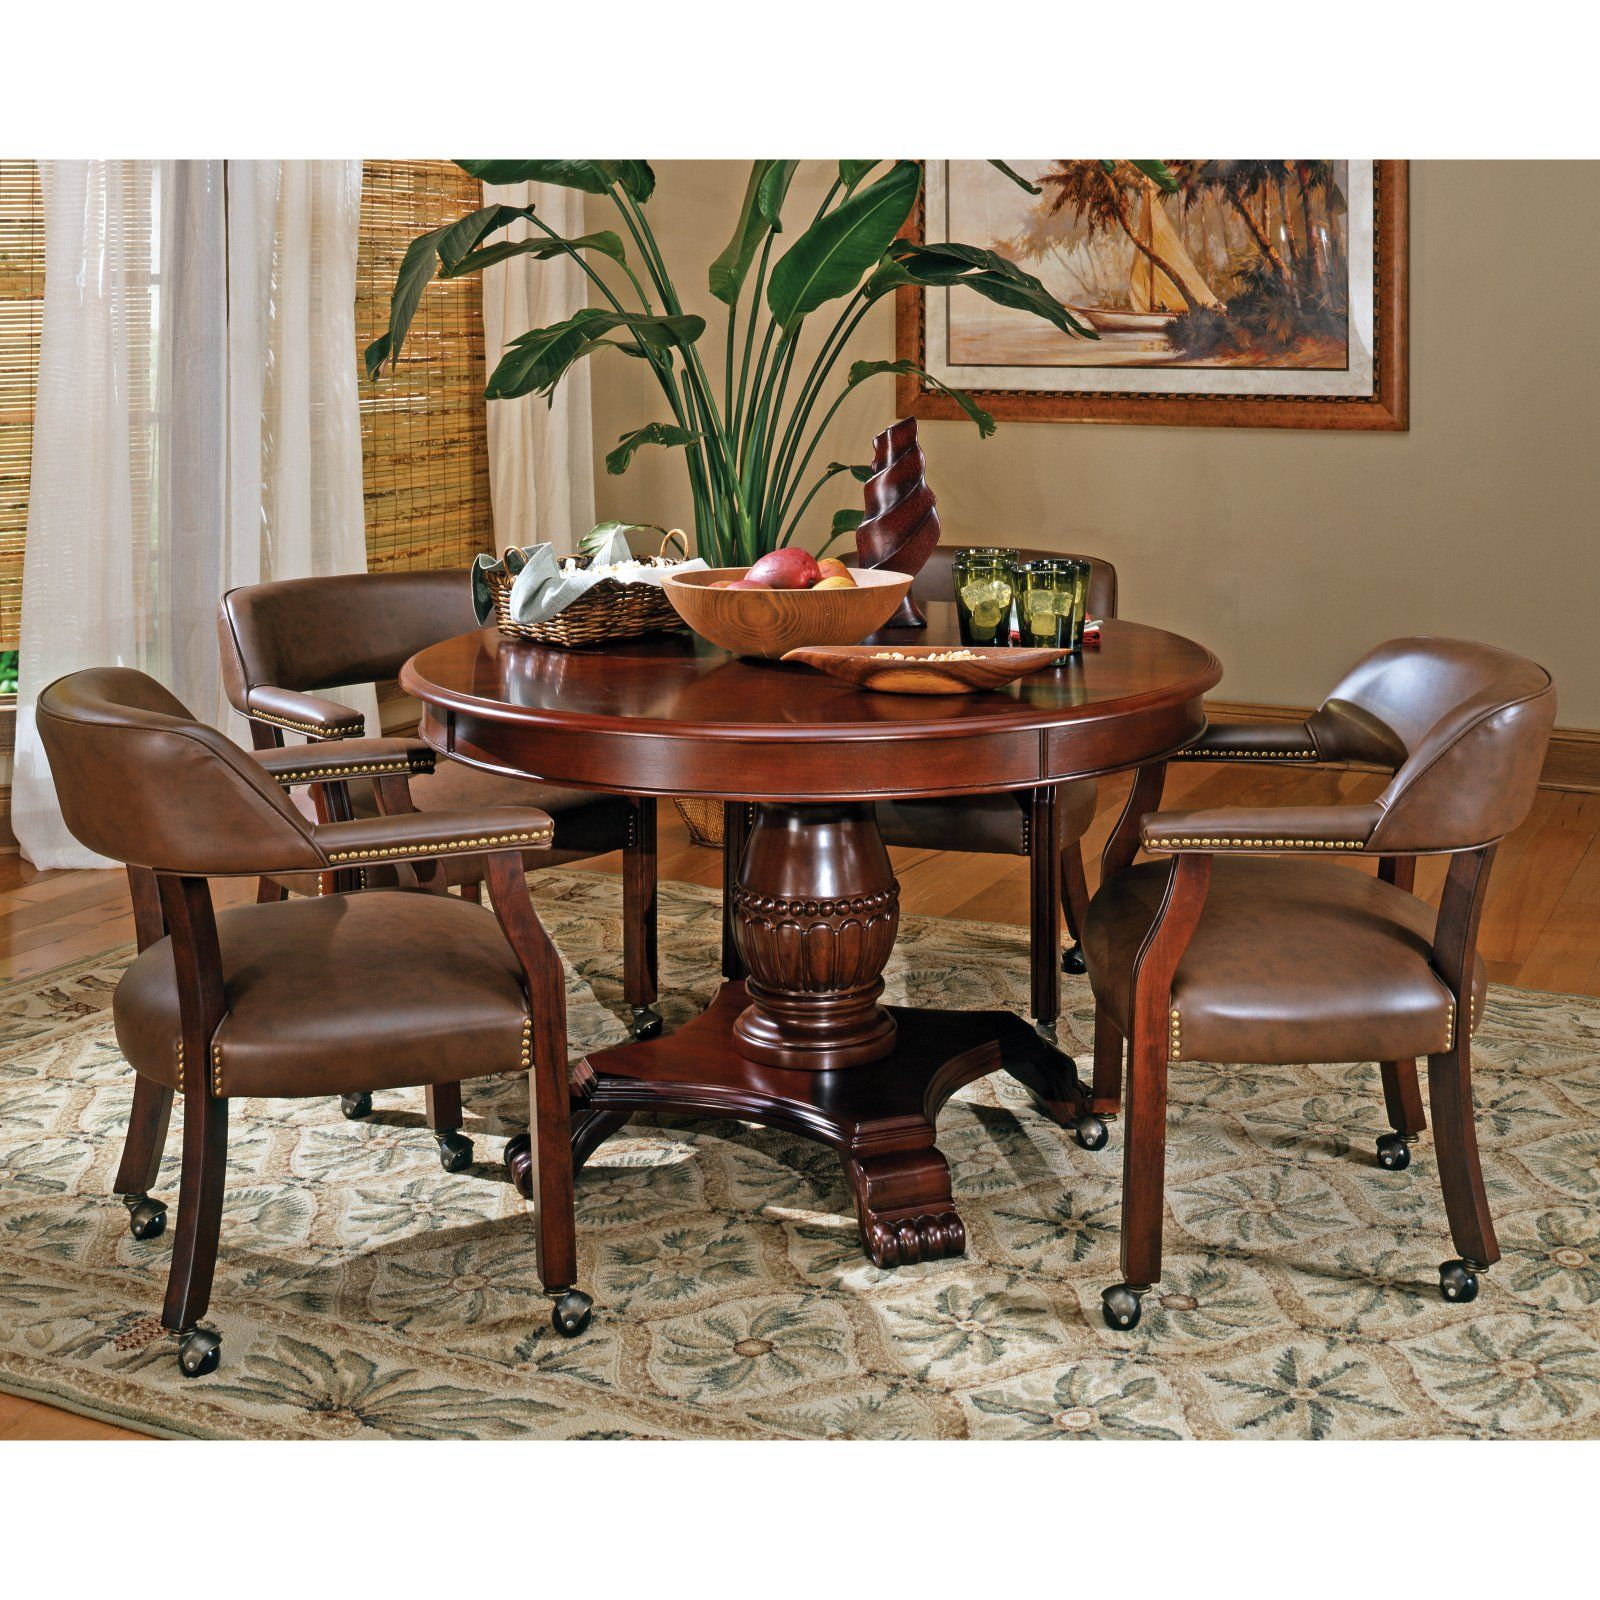 Steve Silver Tournament Arm Chairs With Casters Cherry Set Of